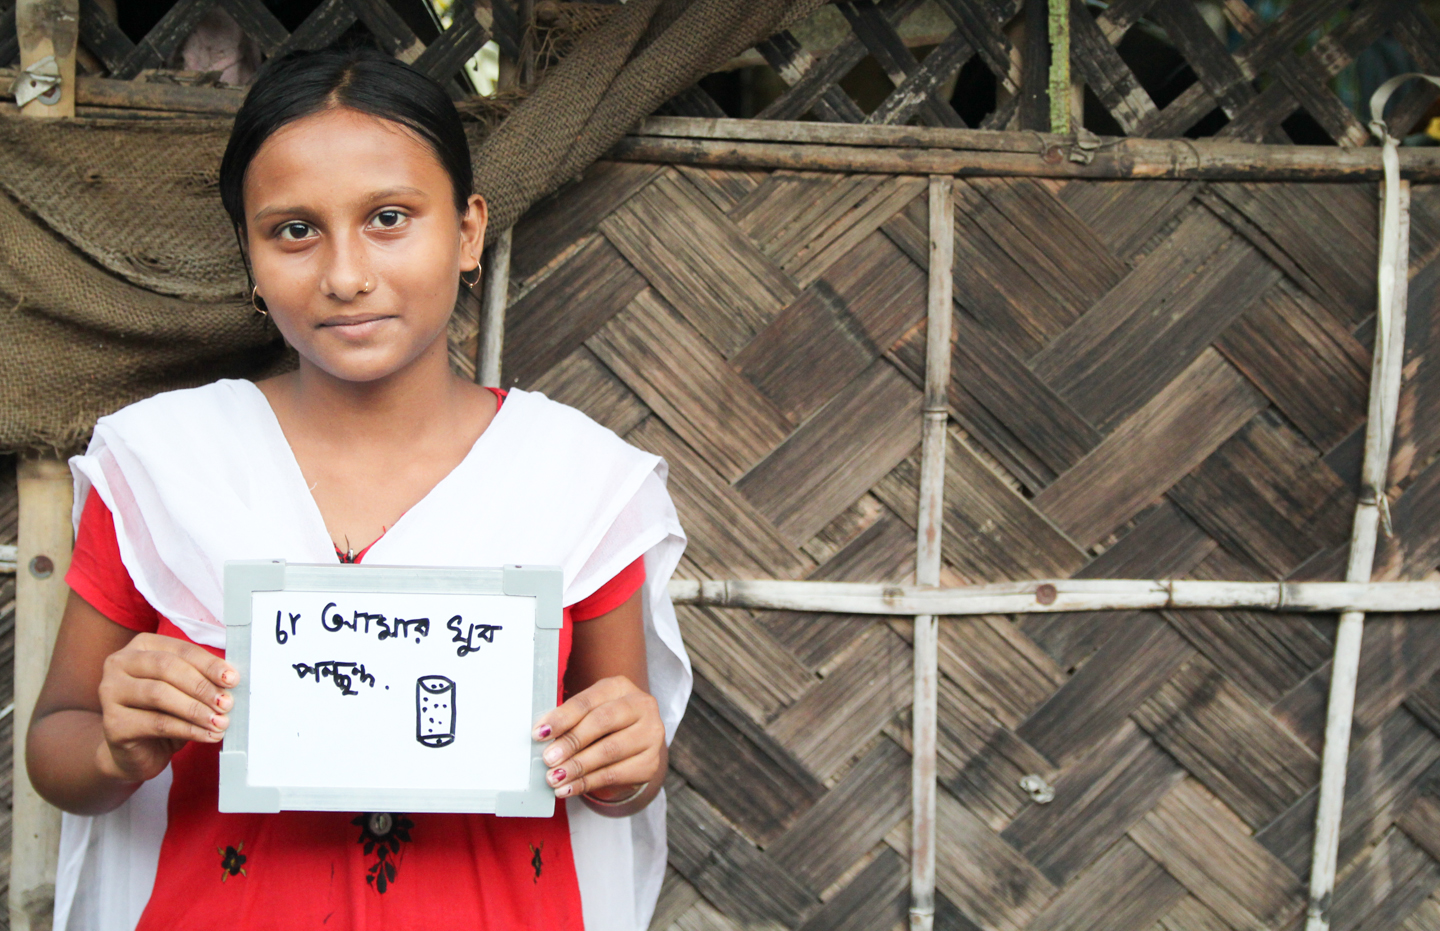 Riya lives in Bonharishpur, a small village in West Bengal. Although there are several chai wallahs in the village whose stands are hubs of activity, Riya, an eighth grader, prefers to drink her mother's special tea at home.